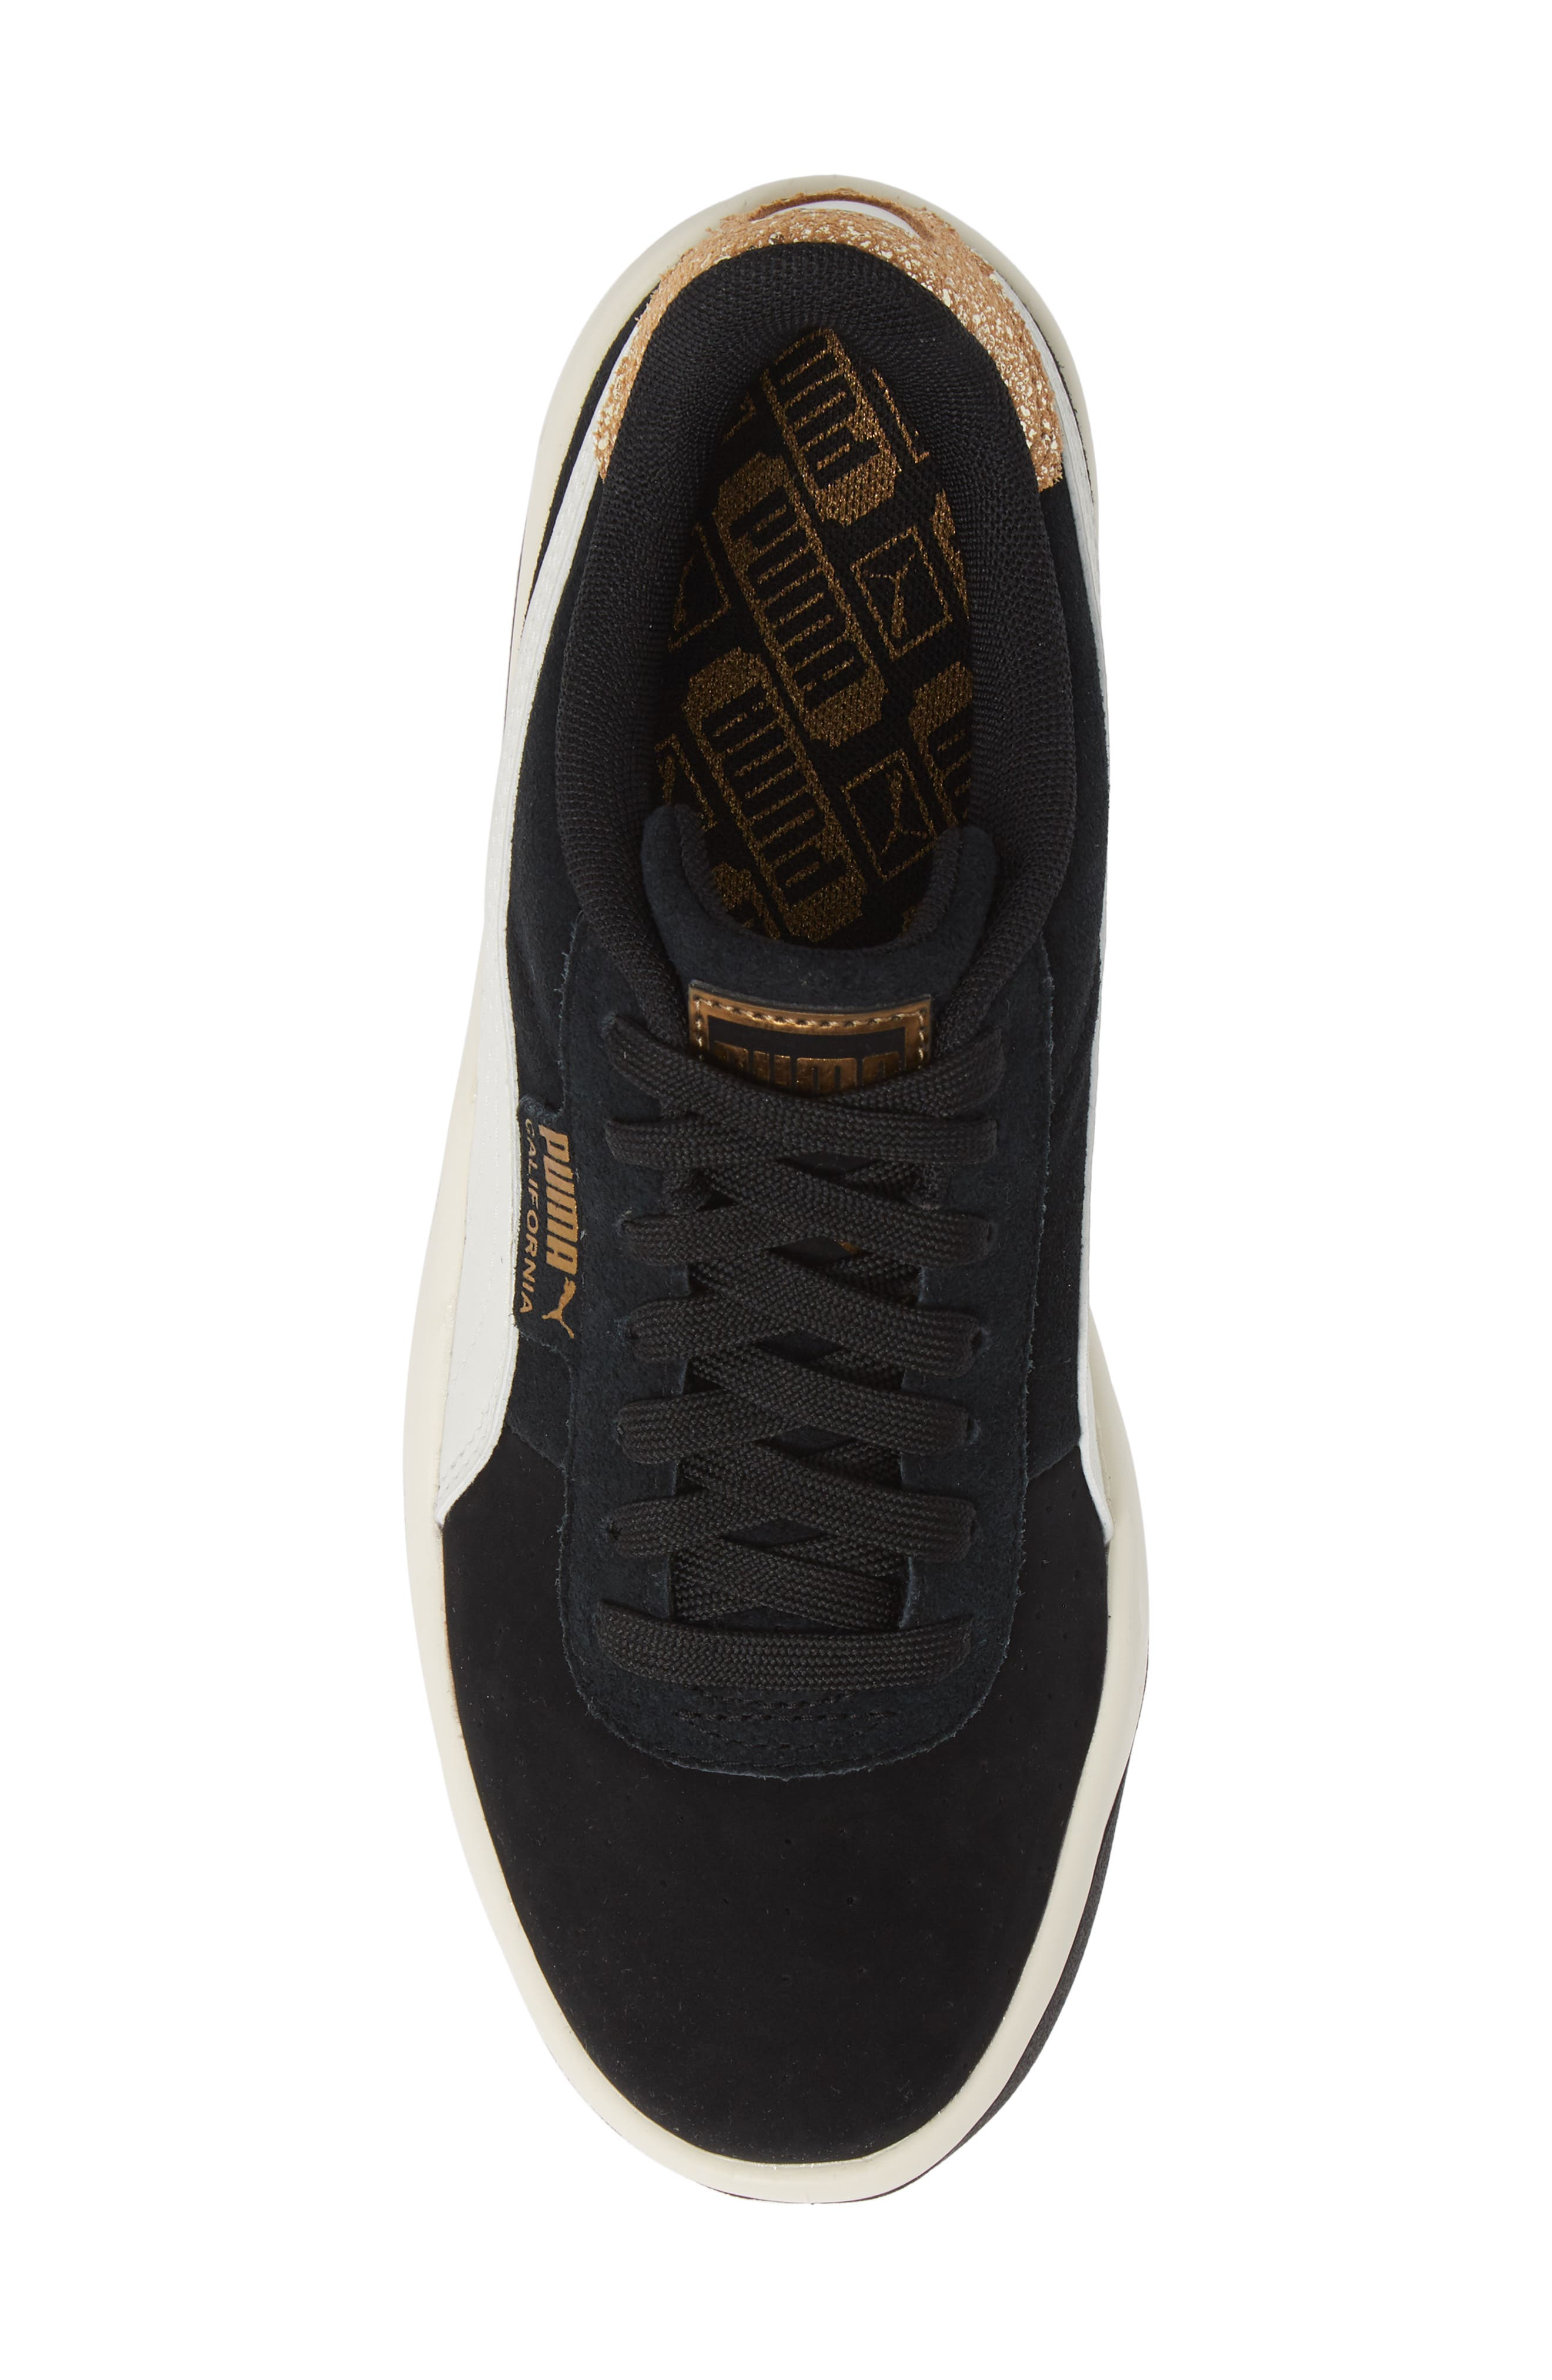 PUMA, California Metallic Sneaker, Alternate thumbnail 5, color, BLACK/ WHITE/ METALLIC BRONZE